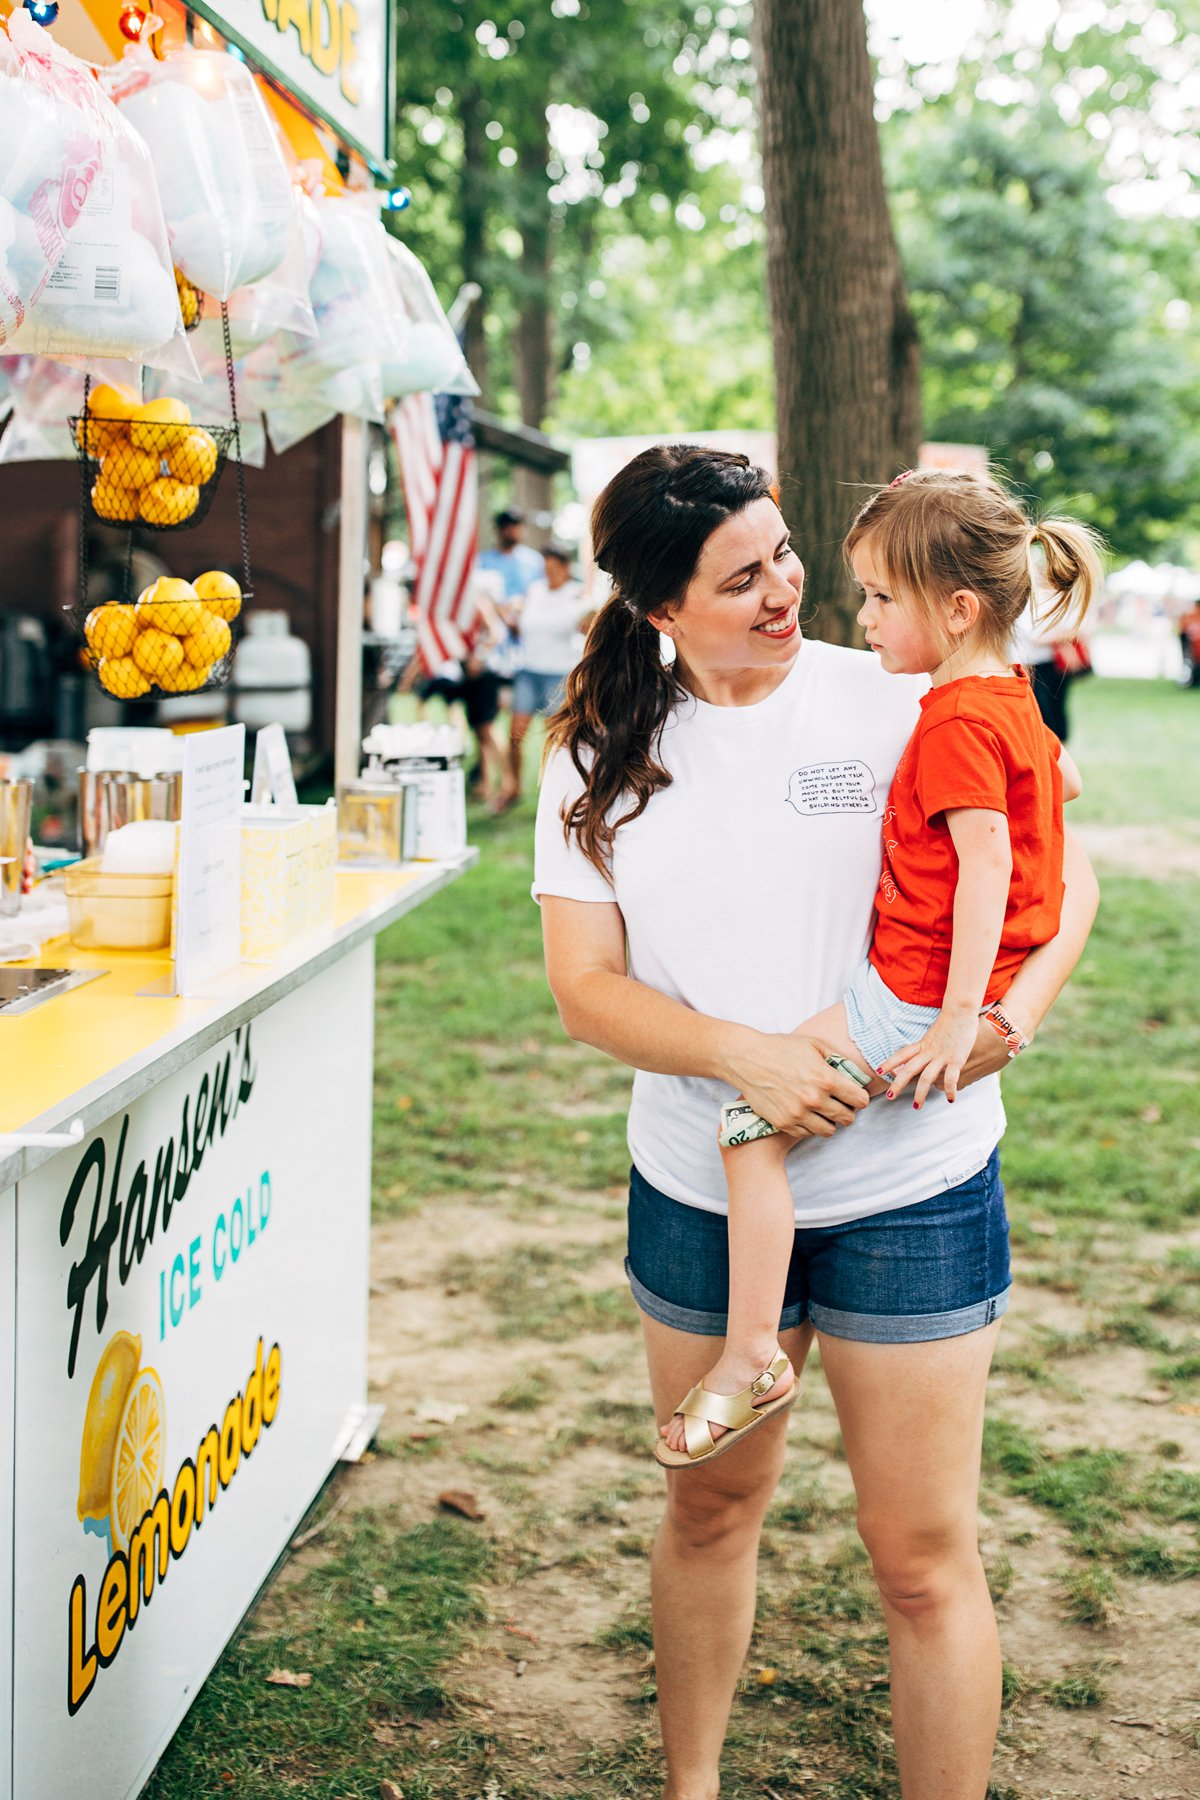 walkinlove_fourthofjuly_lititzspringspark_2018-33.jpg